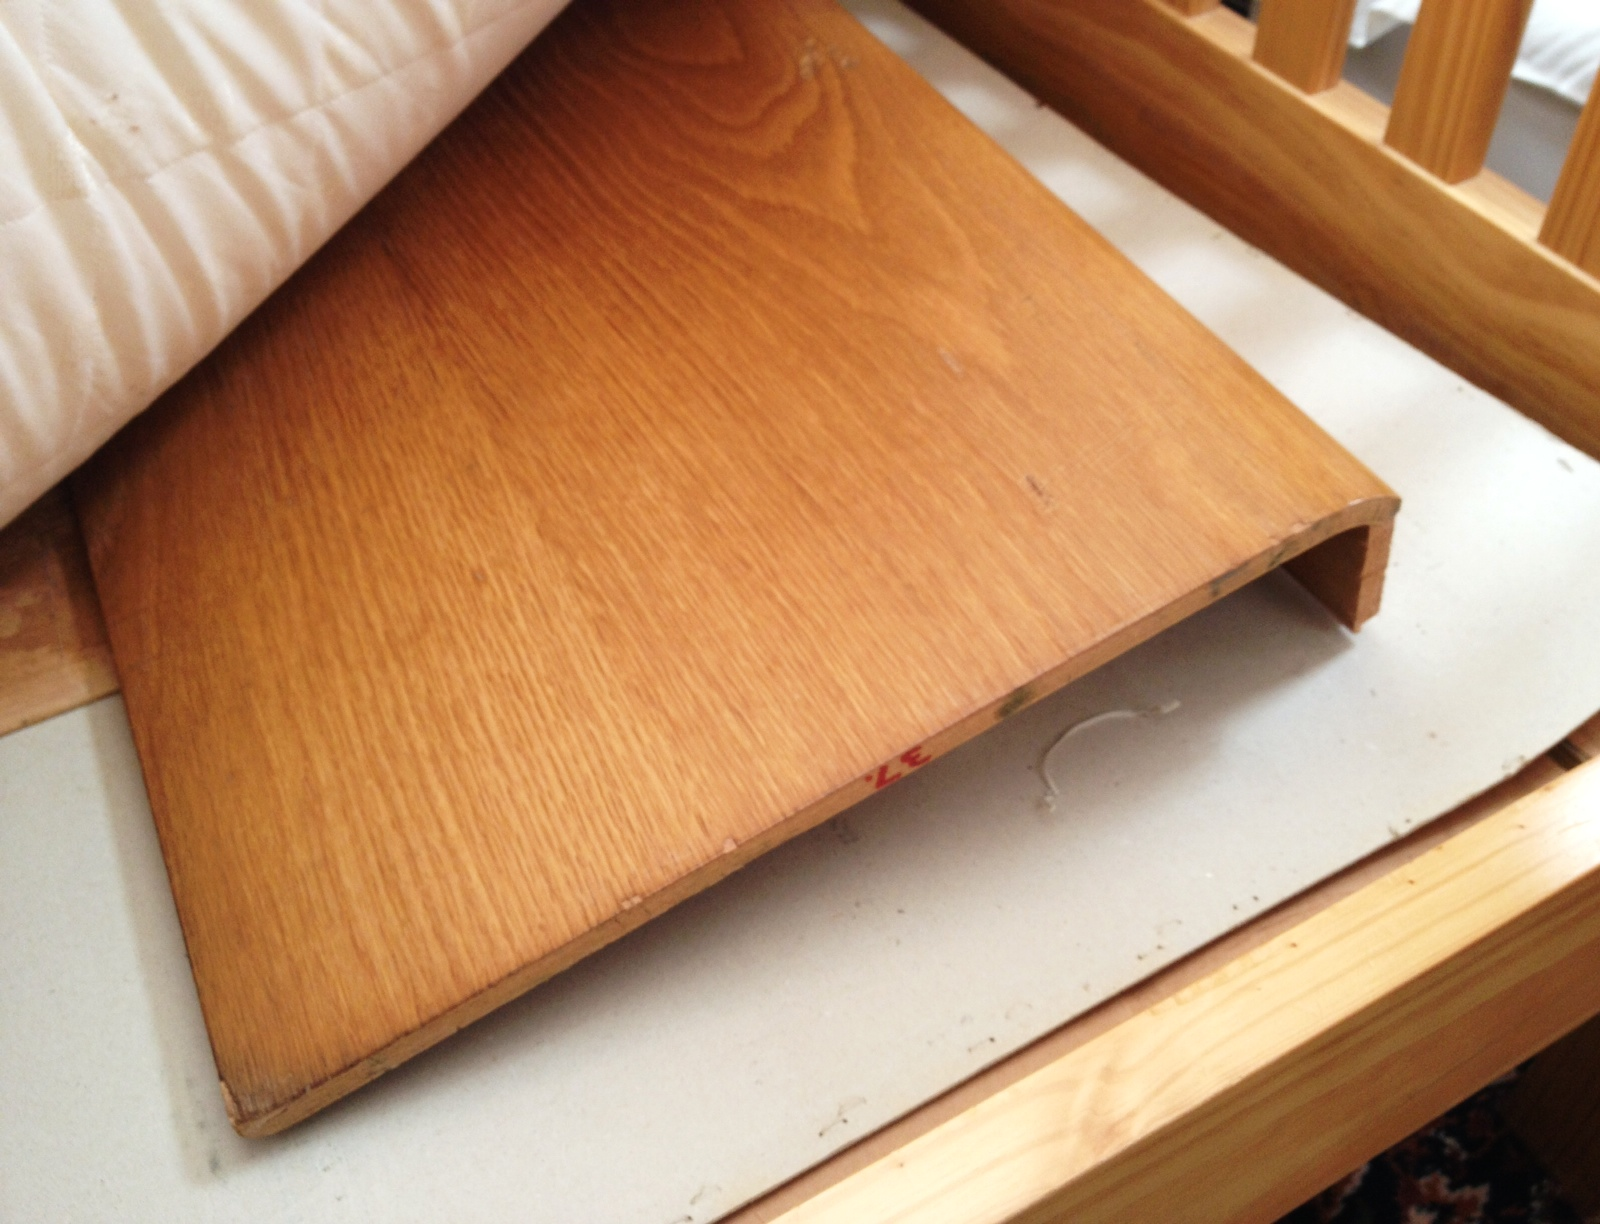 Bed wedge for acid reflux - Living With Lymphoedema Travel Tip Elevated Mattresses